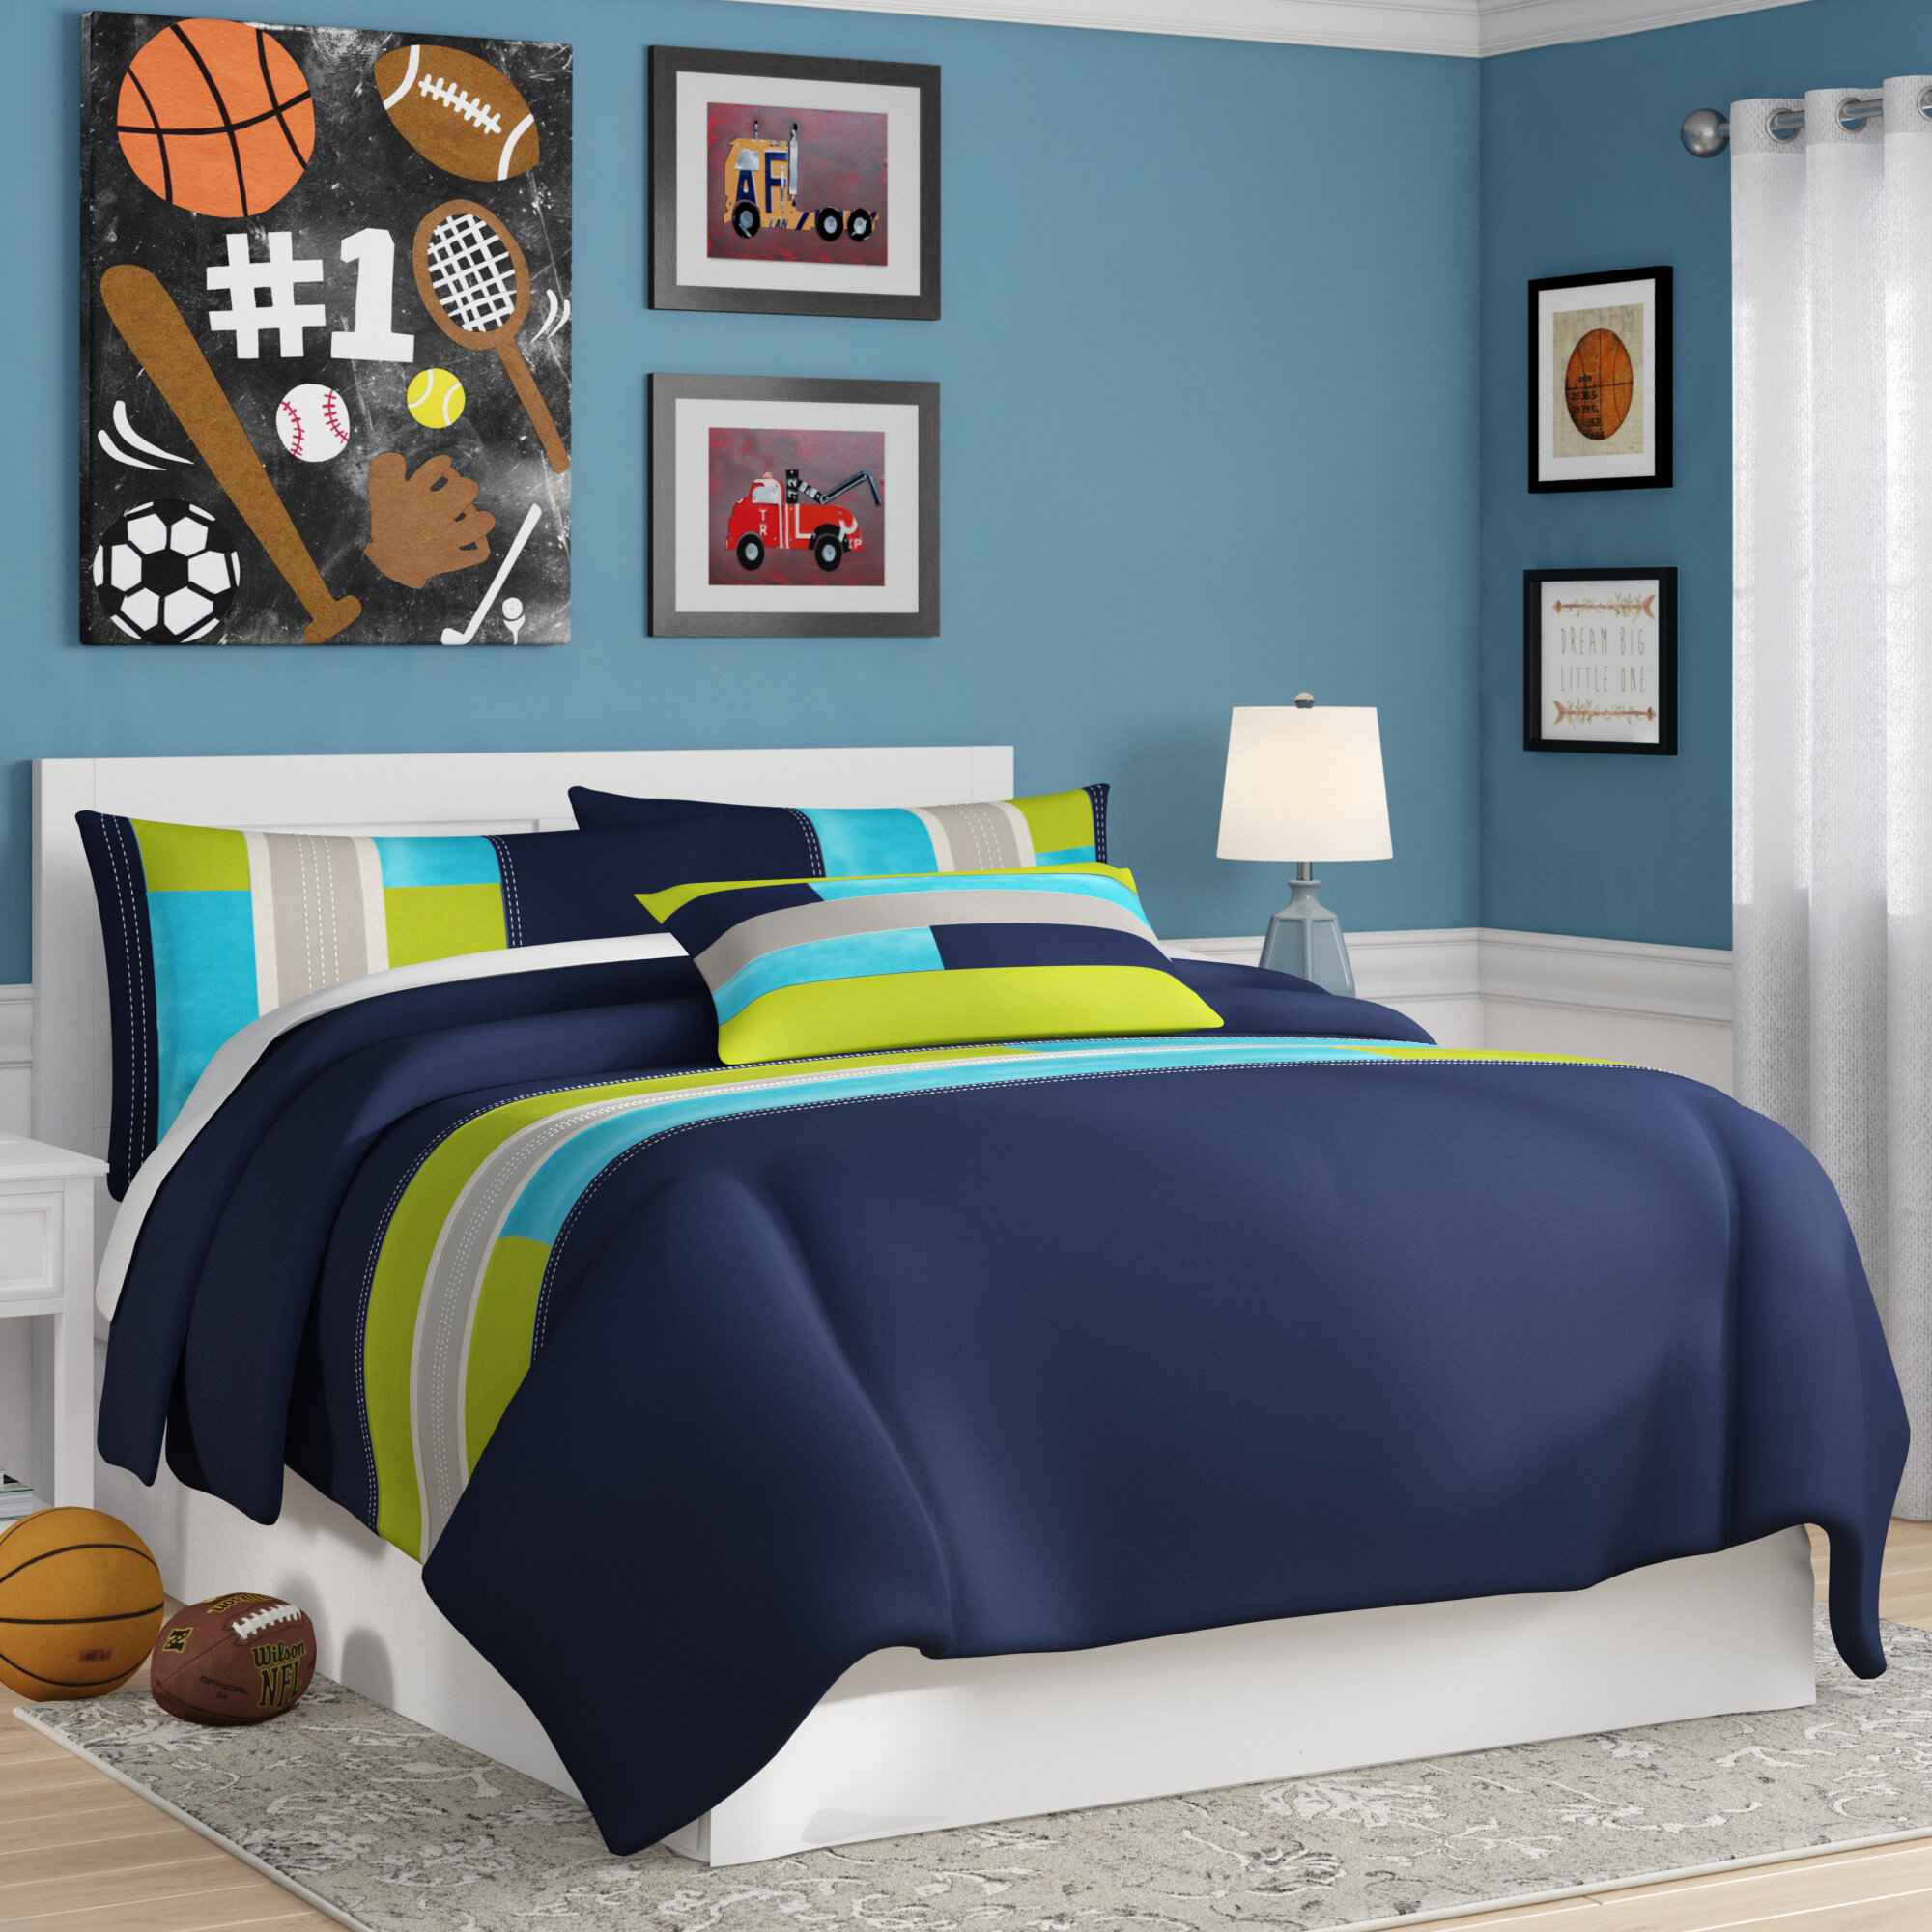 Comforters Comforter Sets Sale Through 06 01 Wayfair